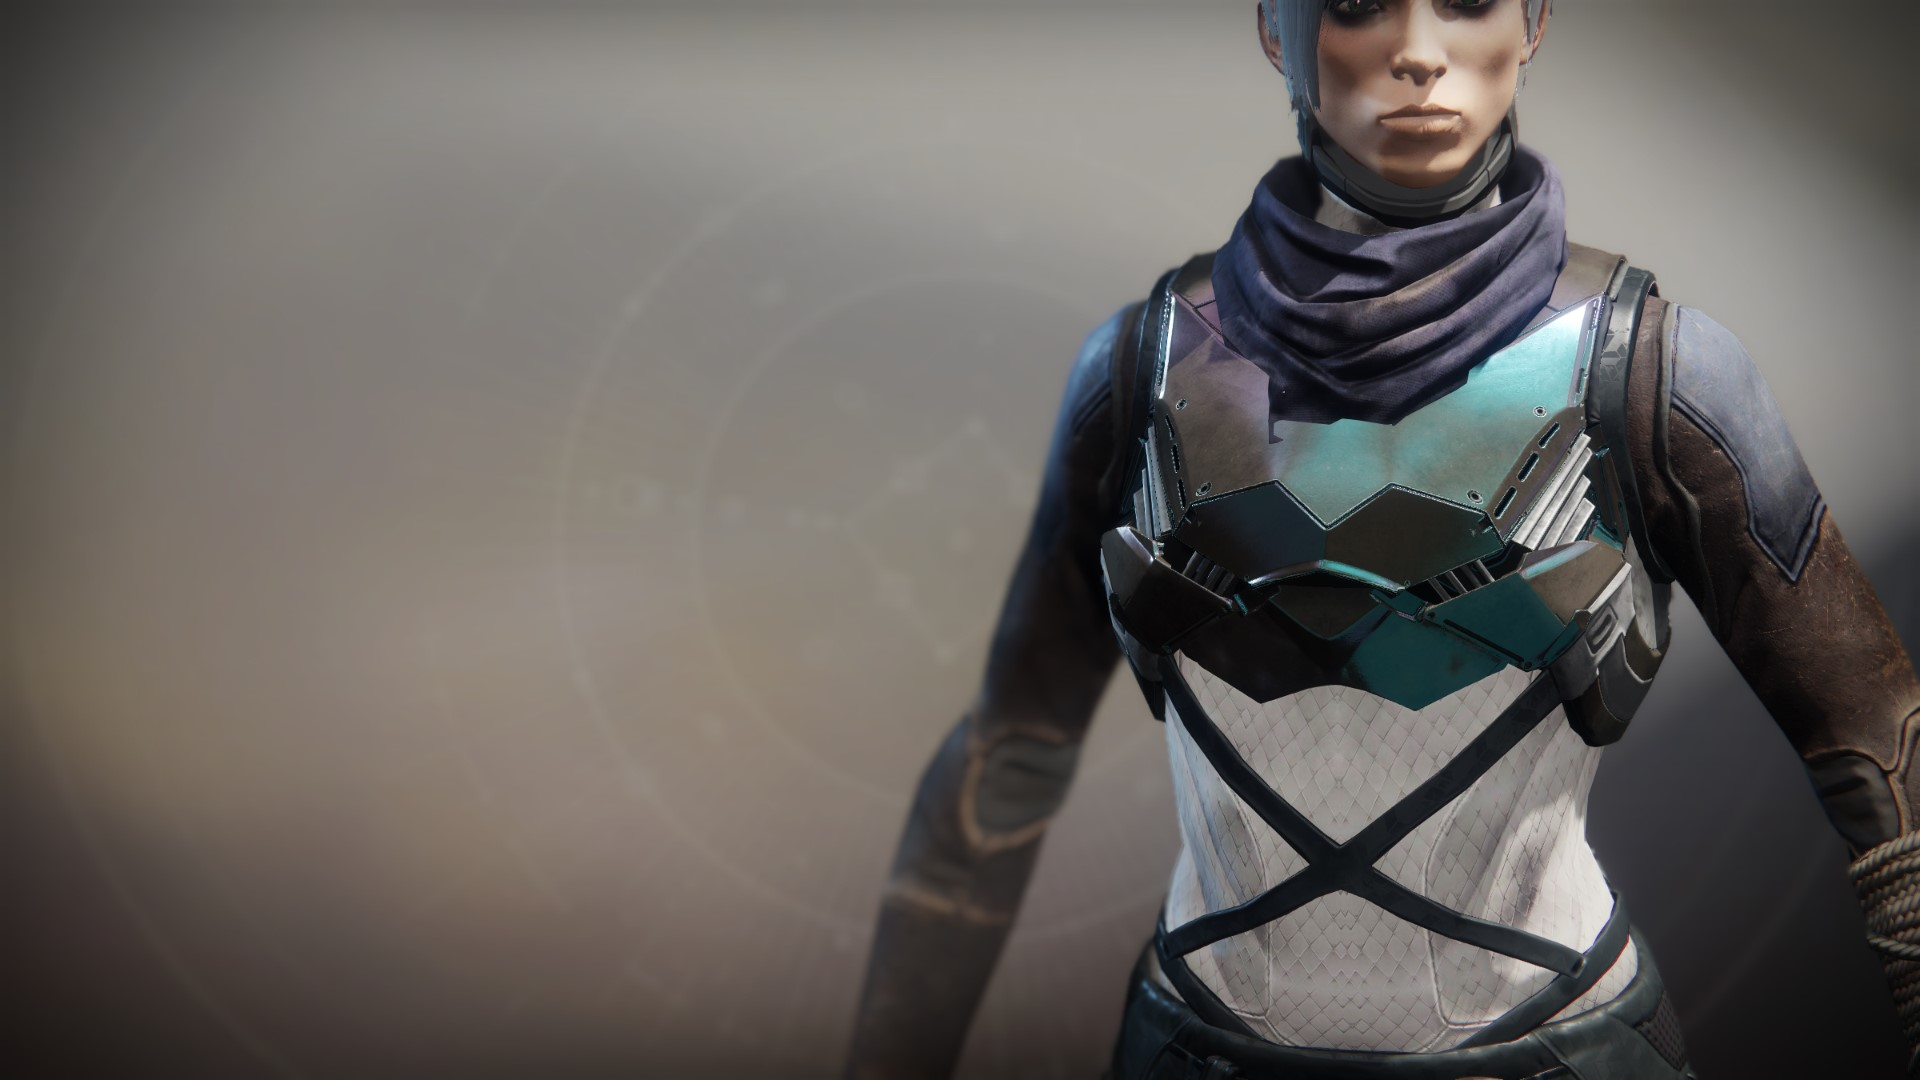 An in-game render of the Flowing Vest (CODA).